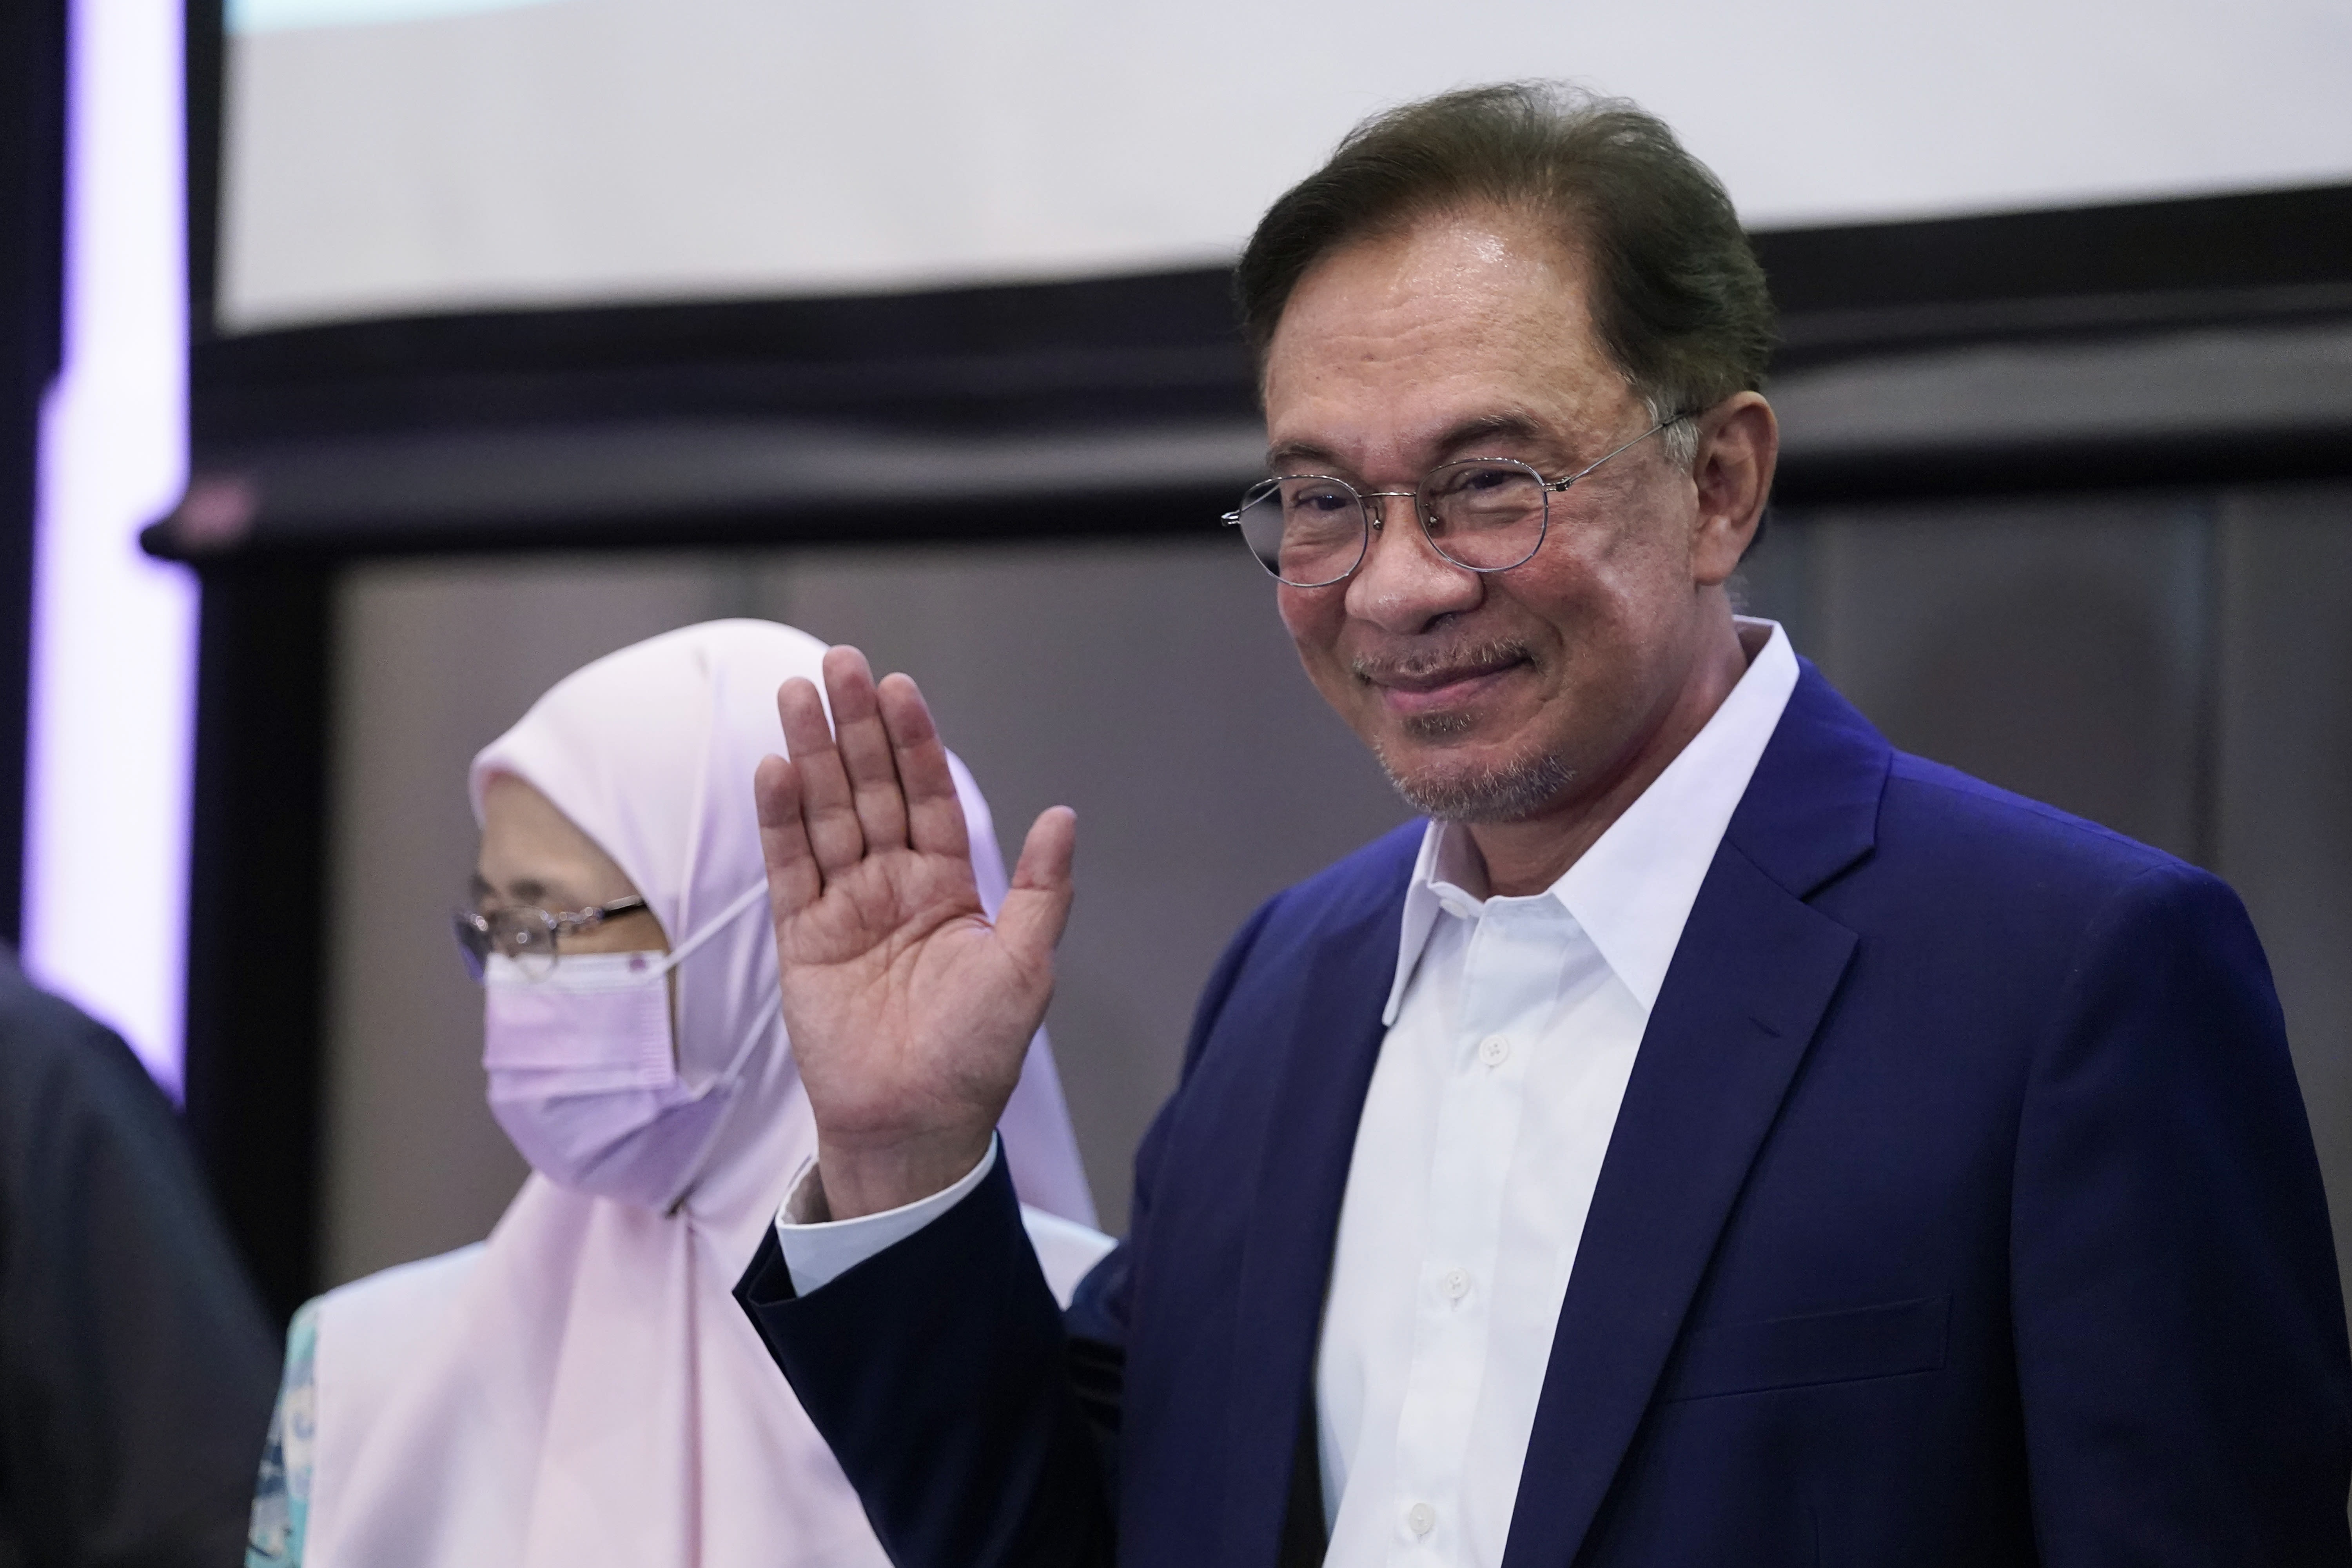 """Malaysia's opposition leader Anwar Ibrahim waves after a press conference in Kuala Lumpur, Wednesday, Sept. 23, 2020. Anwar said he has secured a majority in parliament to form a new government that is """"strong, stable and formidable."""" (AP Photo/Vincent Thian)"""